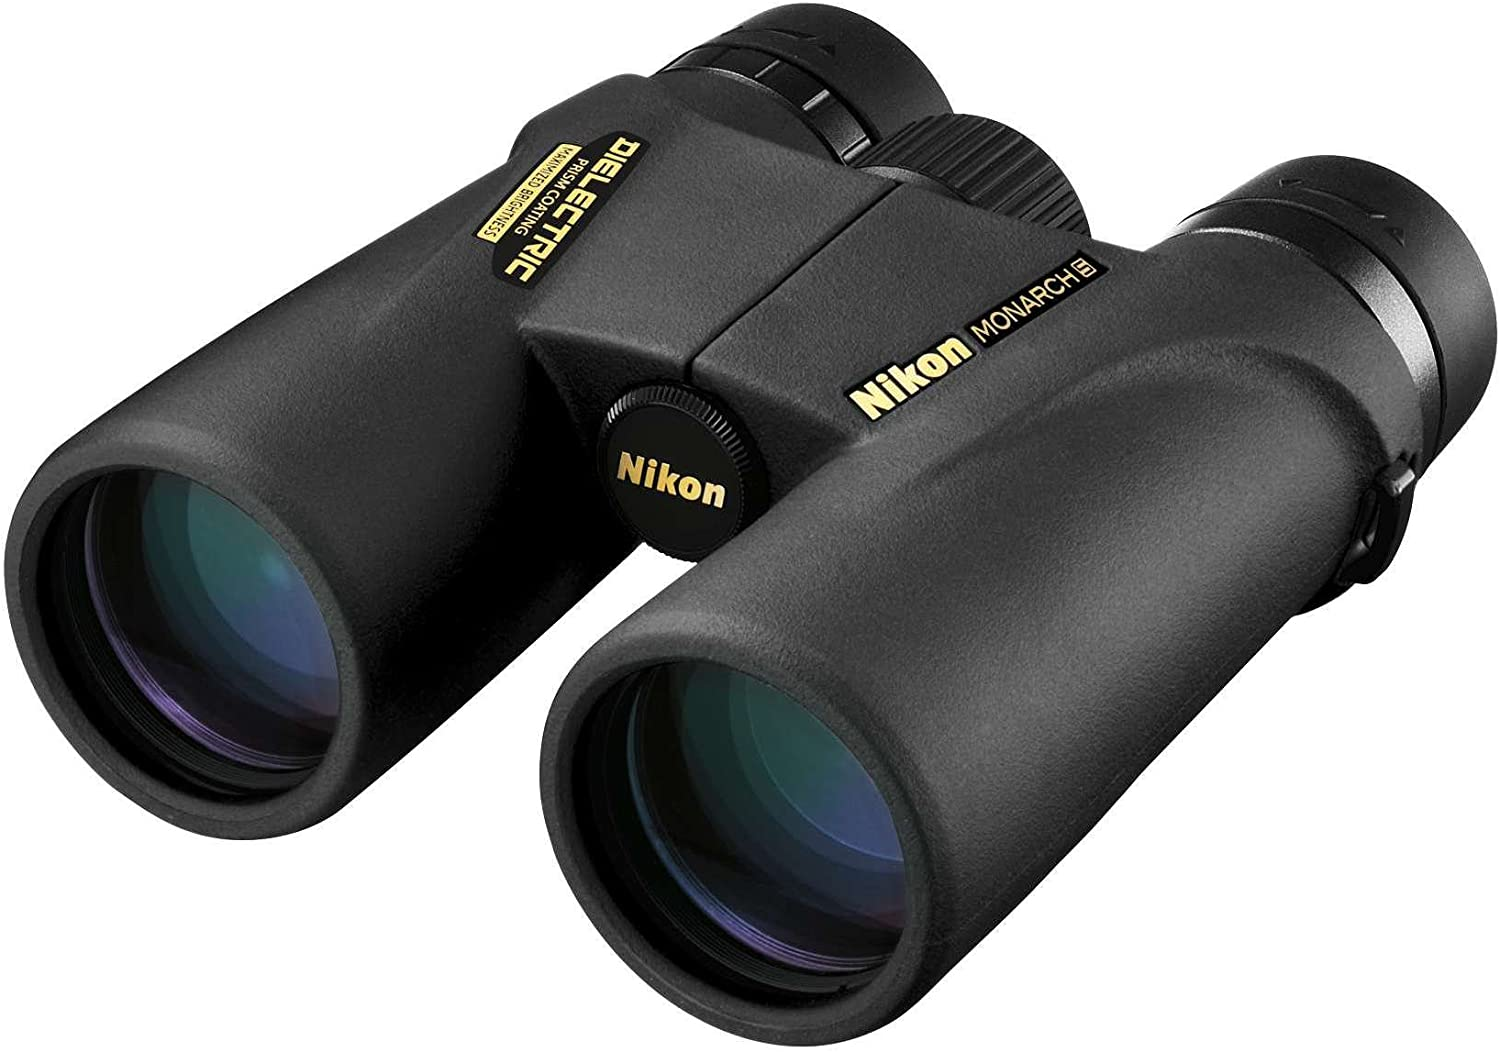 Photo of a shiny black nikon binoculars with brand name printed in yellow color at the center.